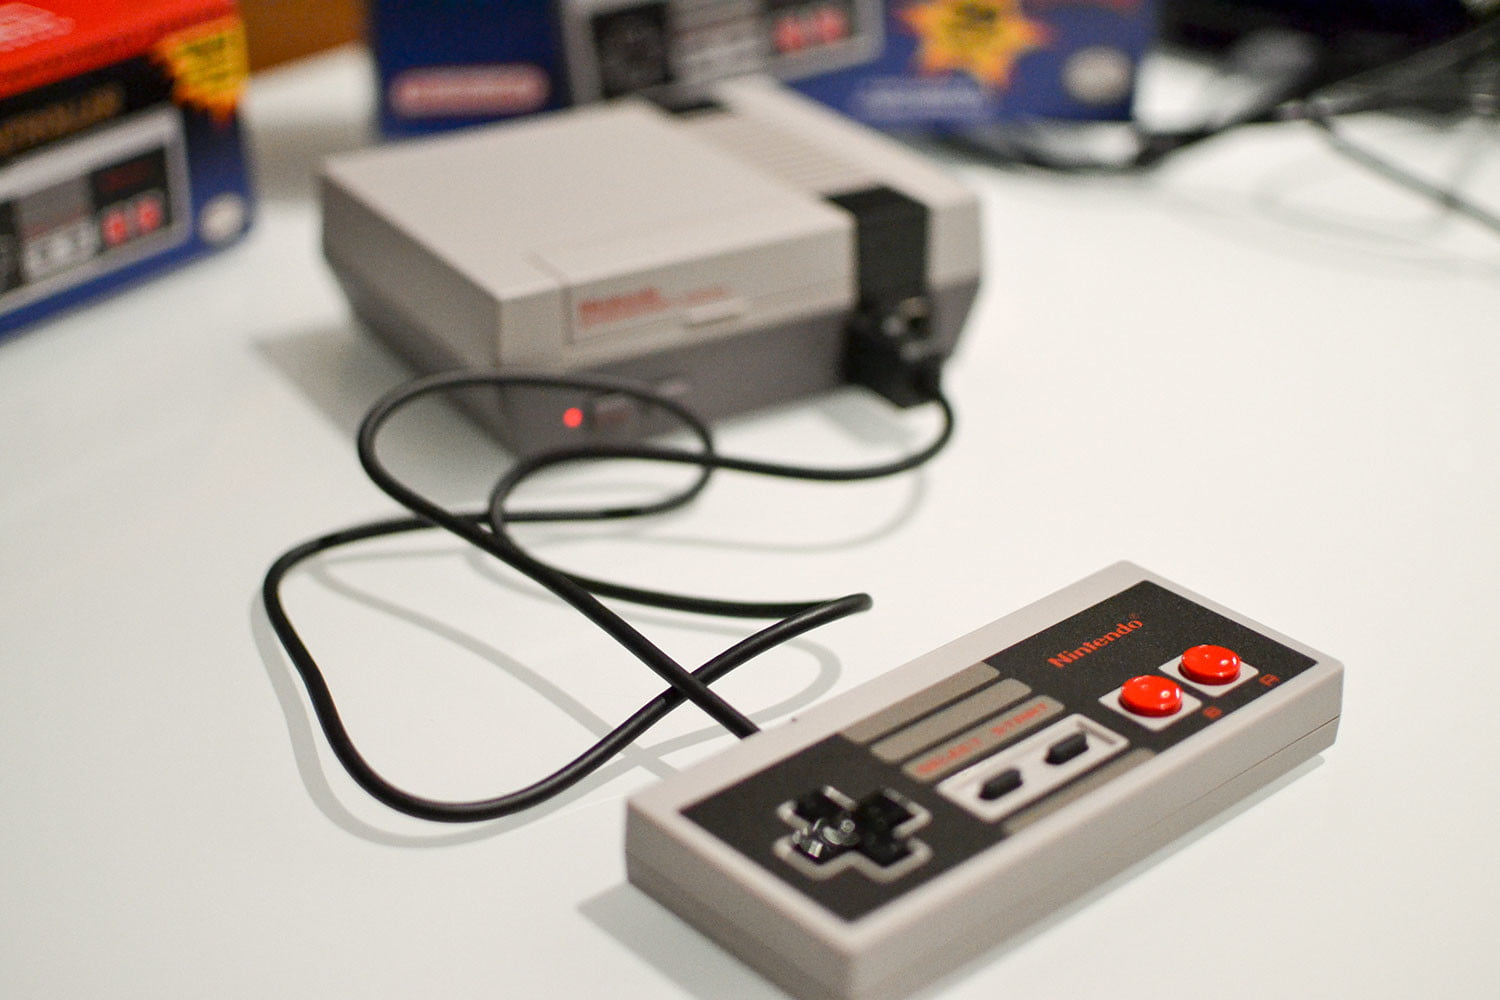 Dentist purchases collection of nearly 40 NES games for just over $1 million